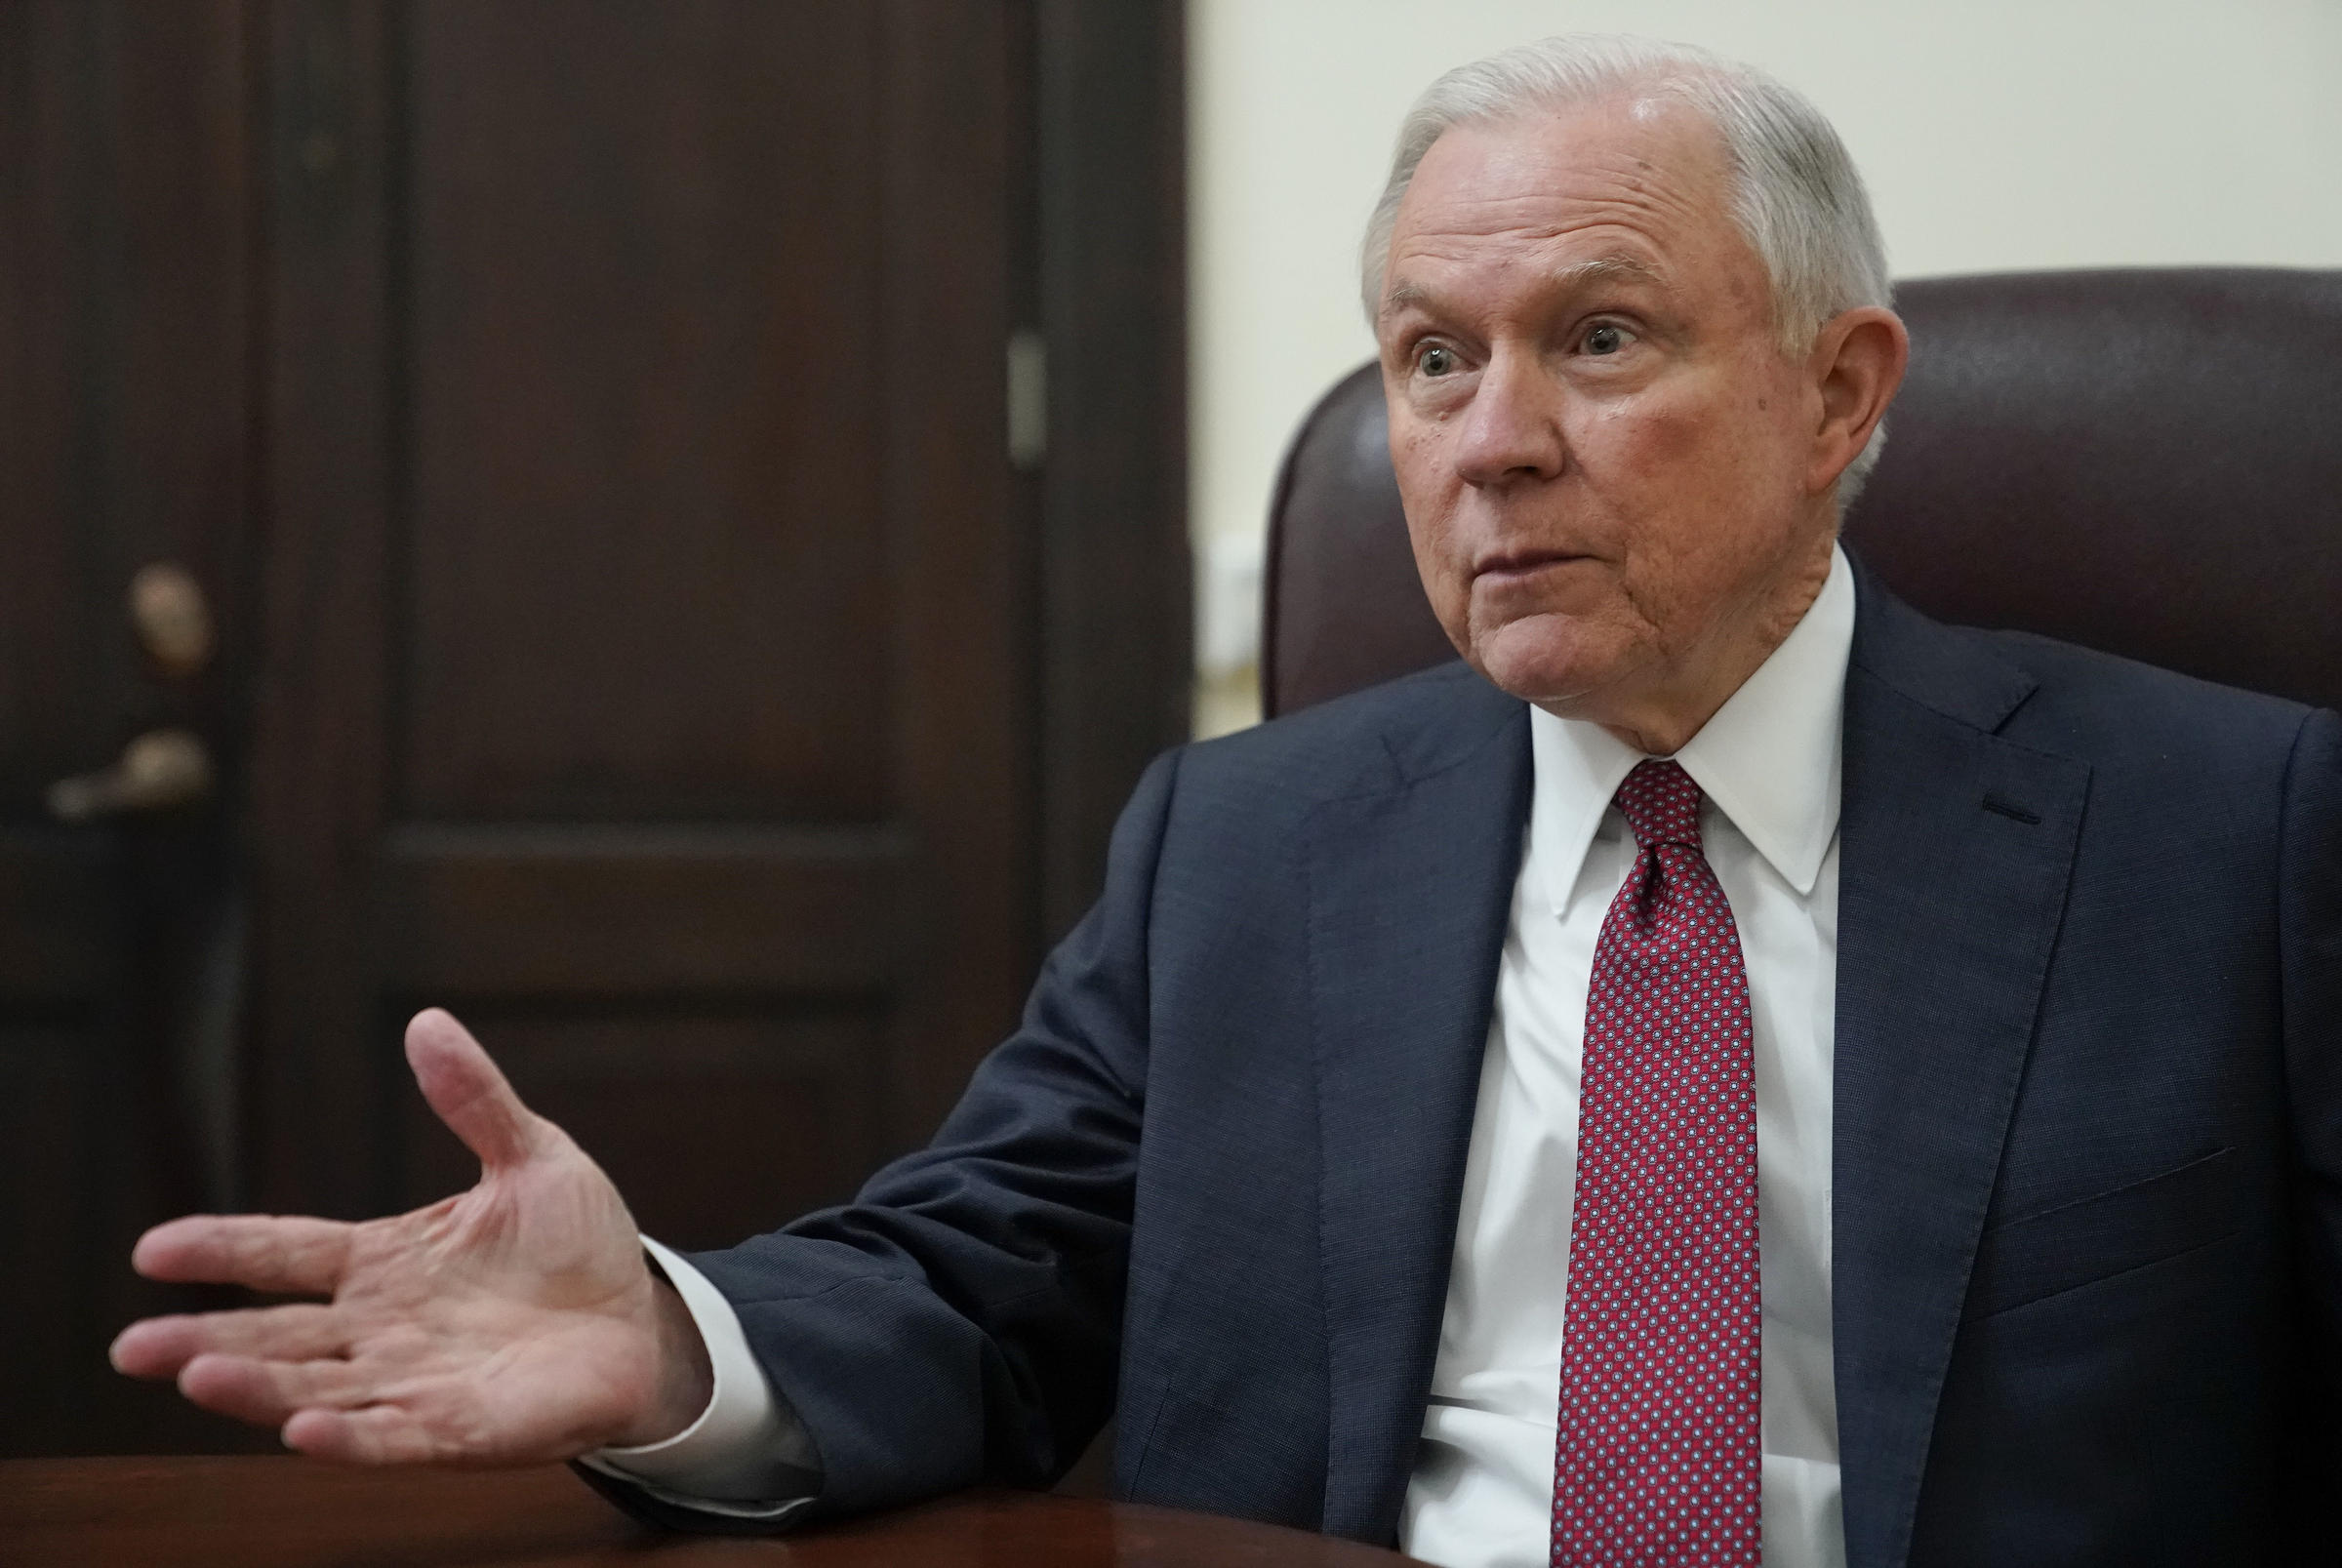 Four People Charged With Leaking Classified Info, Concealing Contacts - Sessions